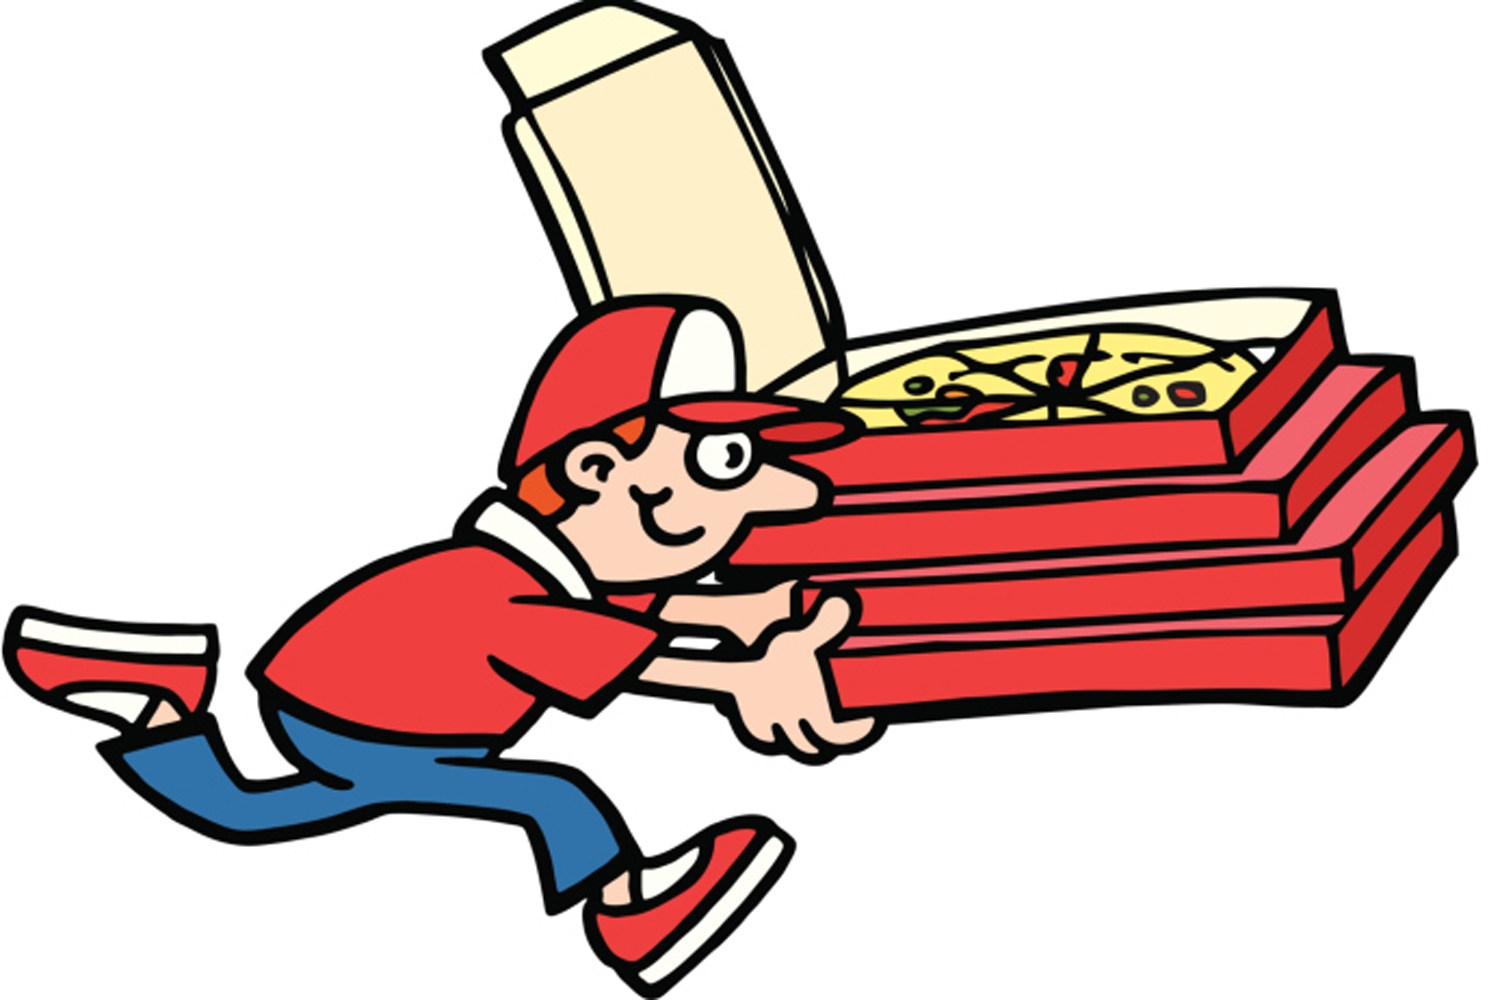 Pizza man clipart 4 » Clipart Portal.